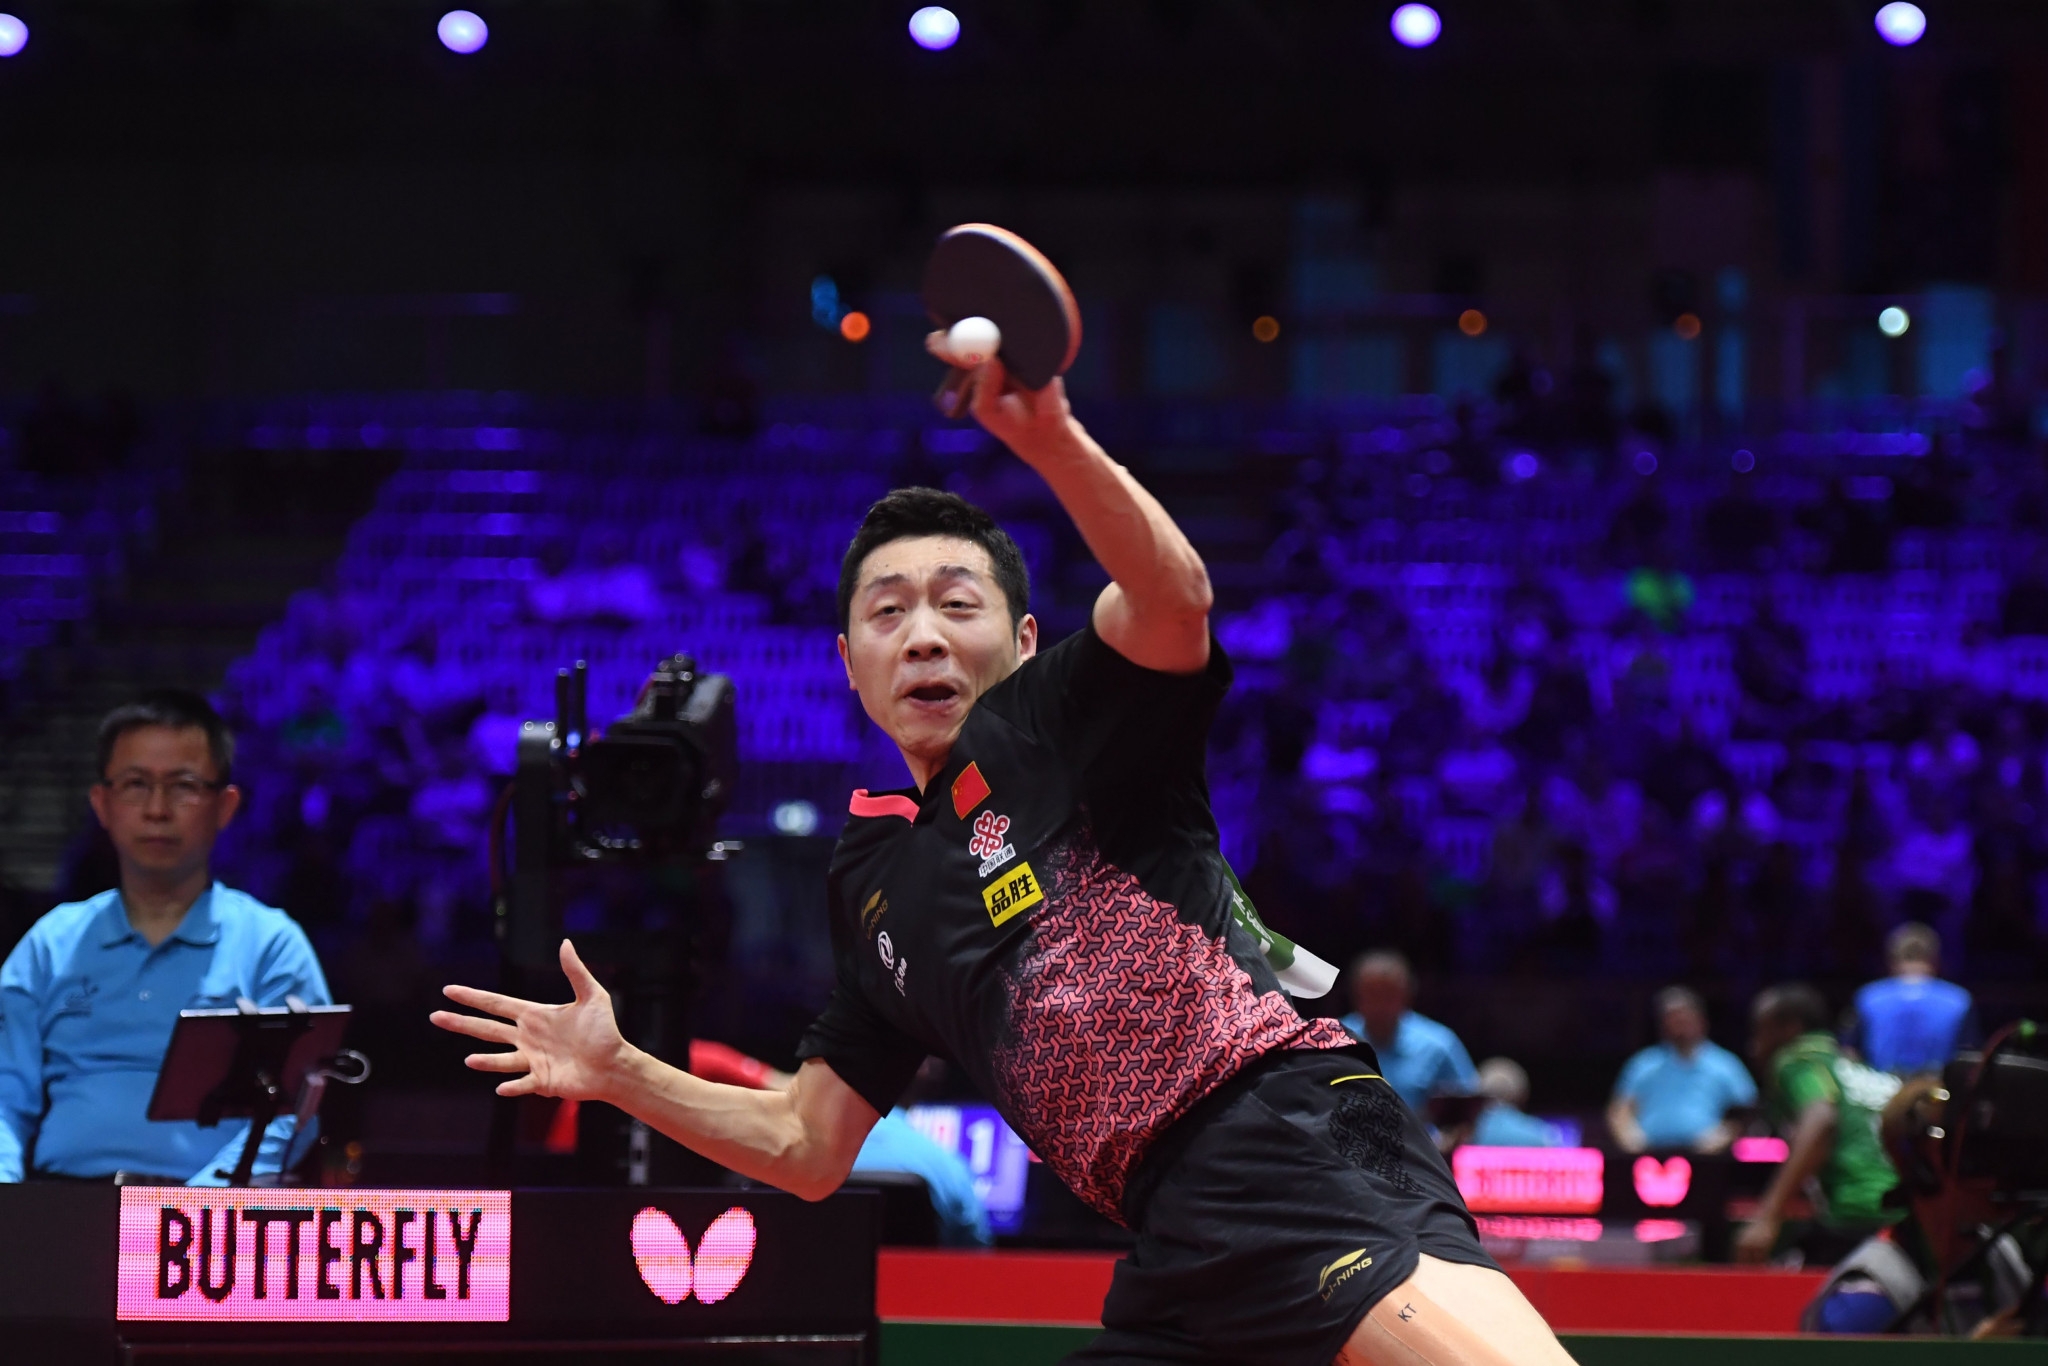 China's Xu Xin suffered a shock defeat at the ITTF World Championships in Budapest ©Getty Images